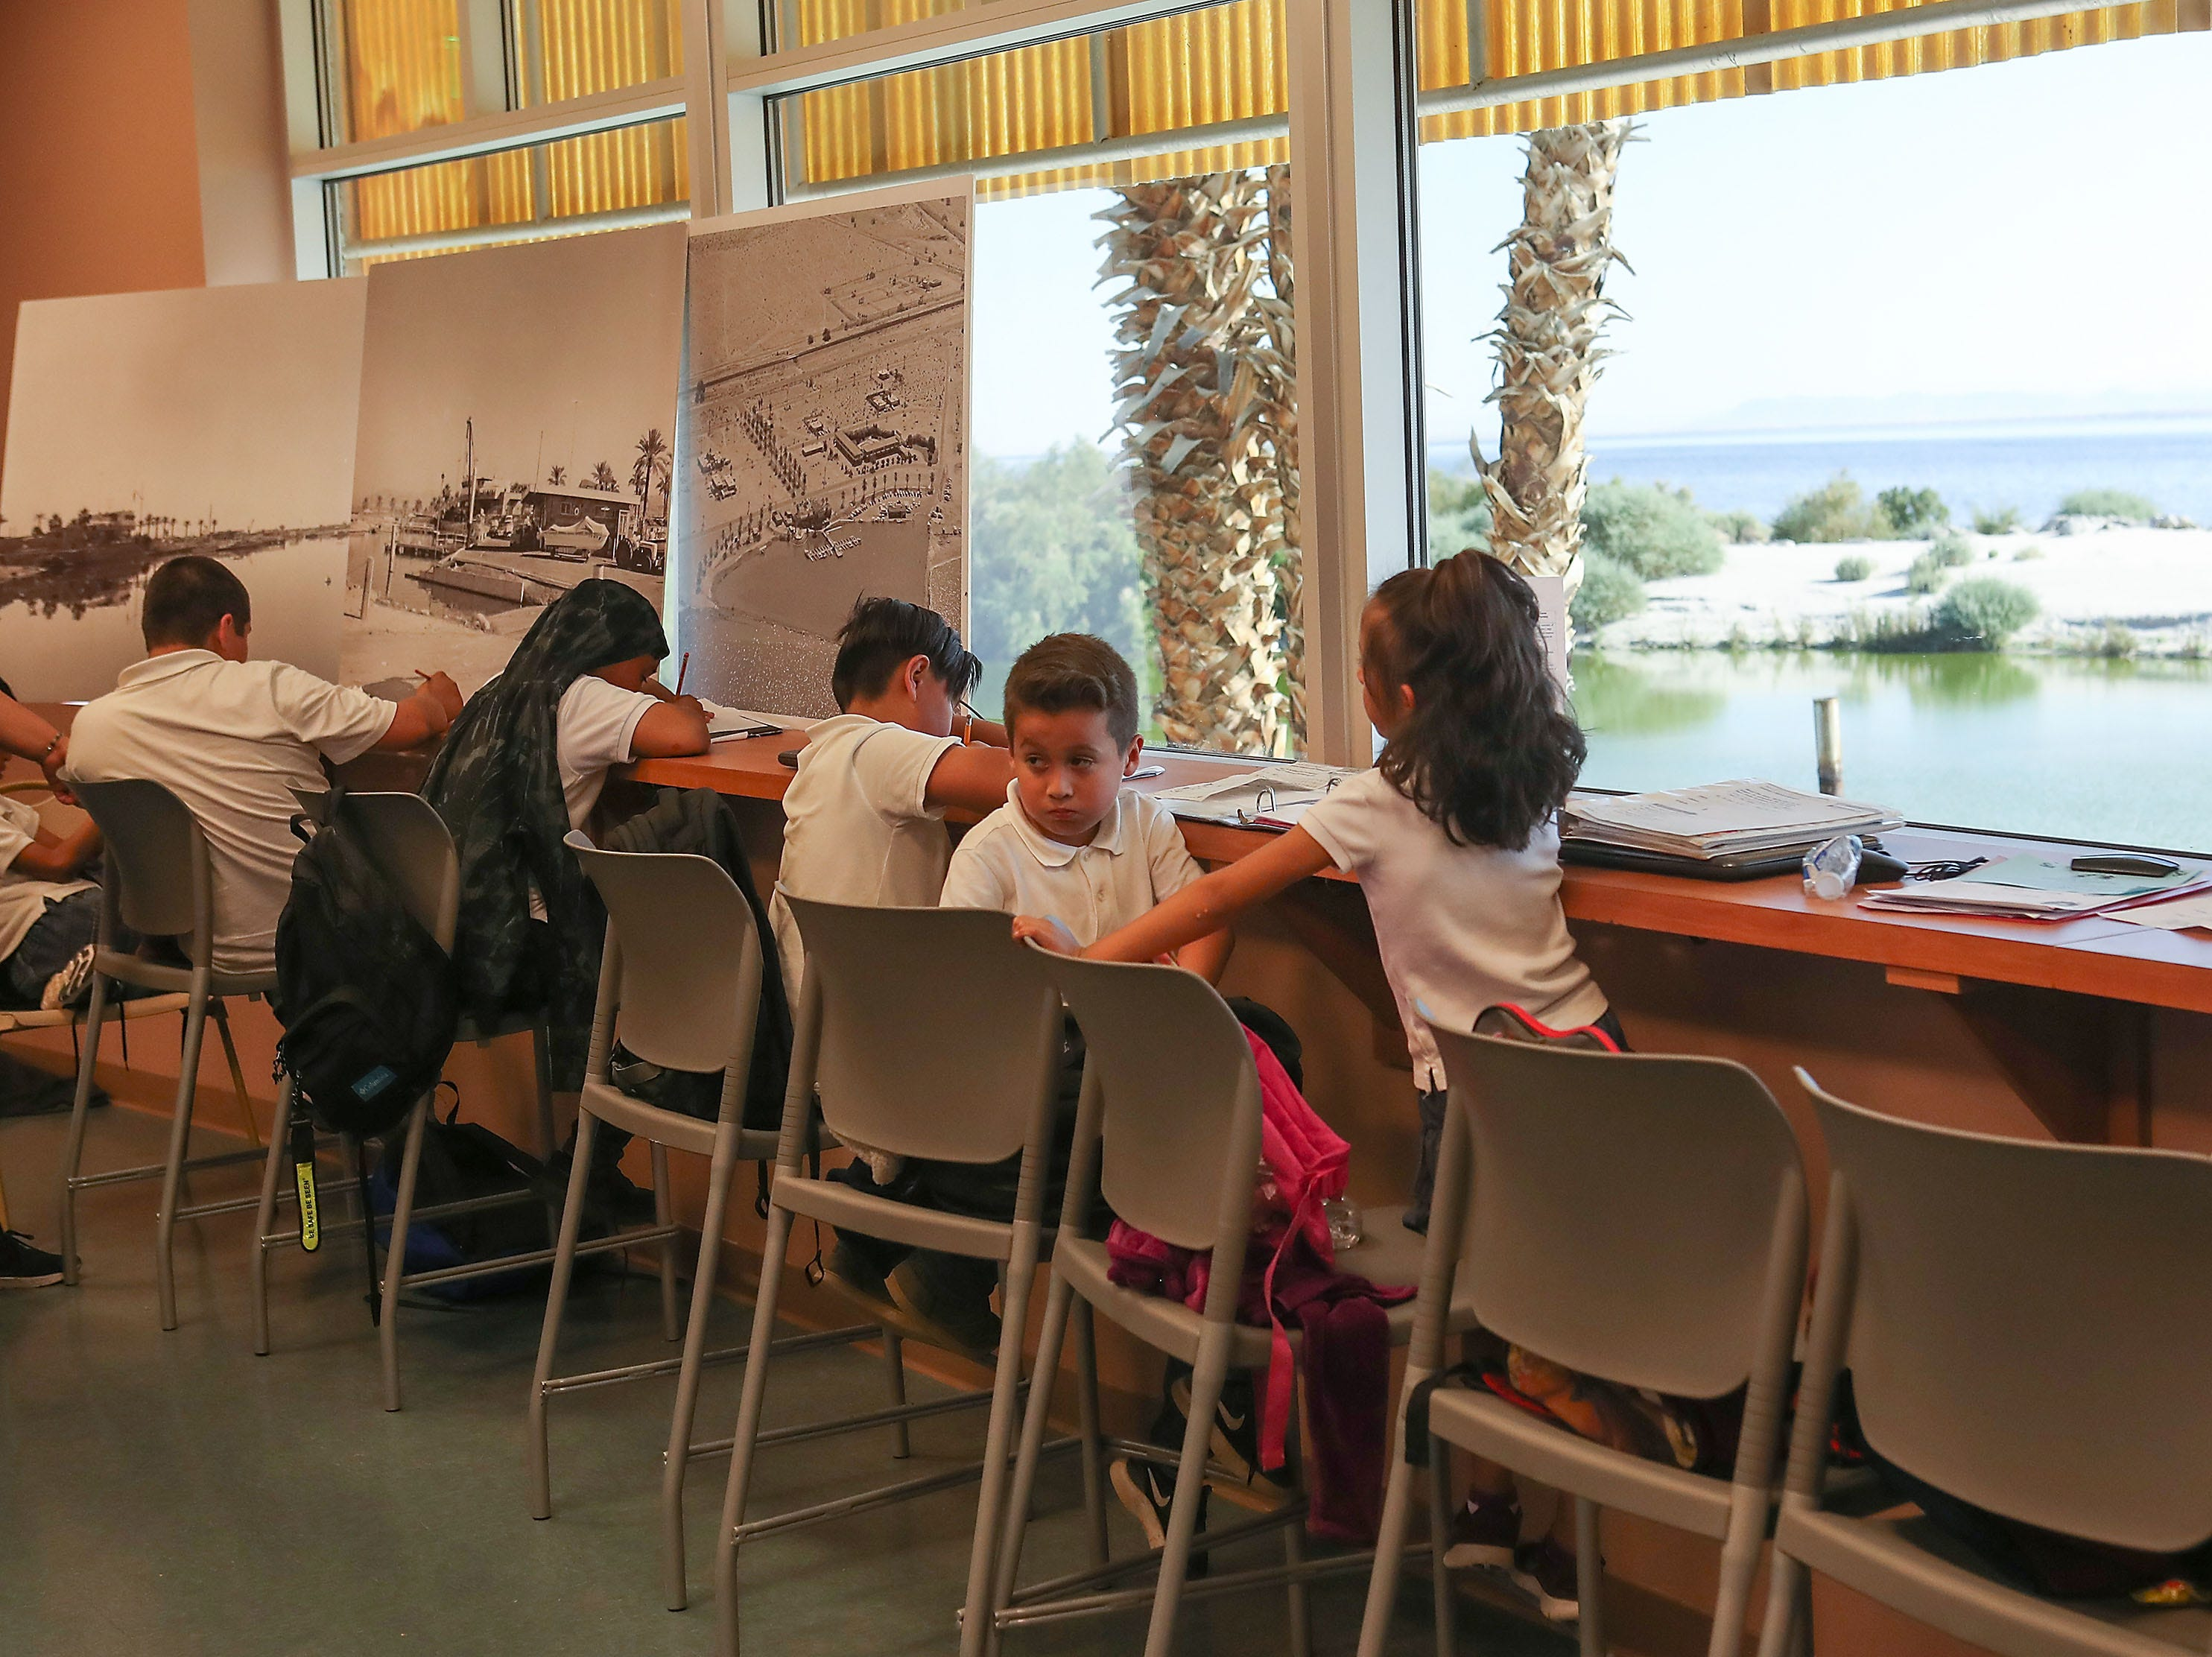 Students from North Shore do schoolwork at the North Shore Yacht Club on the Salton Sea, April 30, 2019.